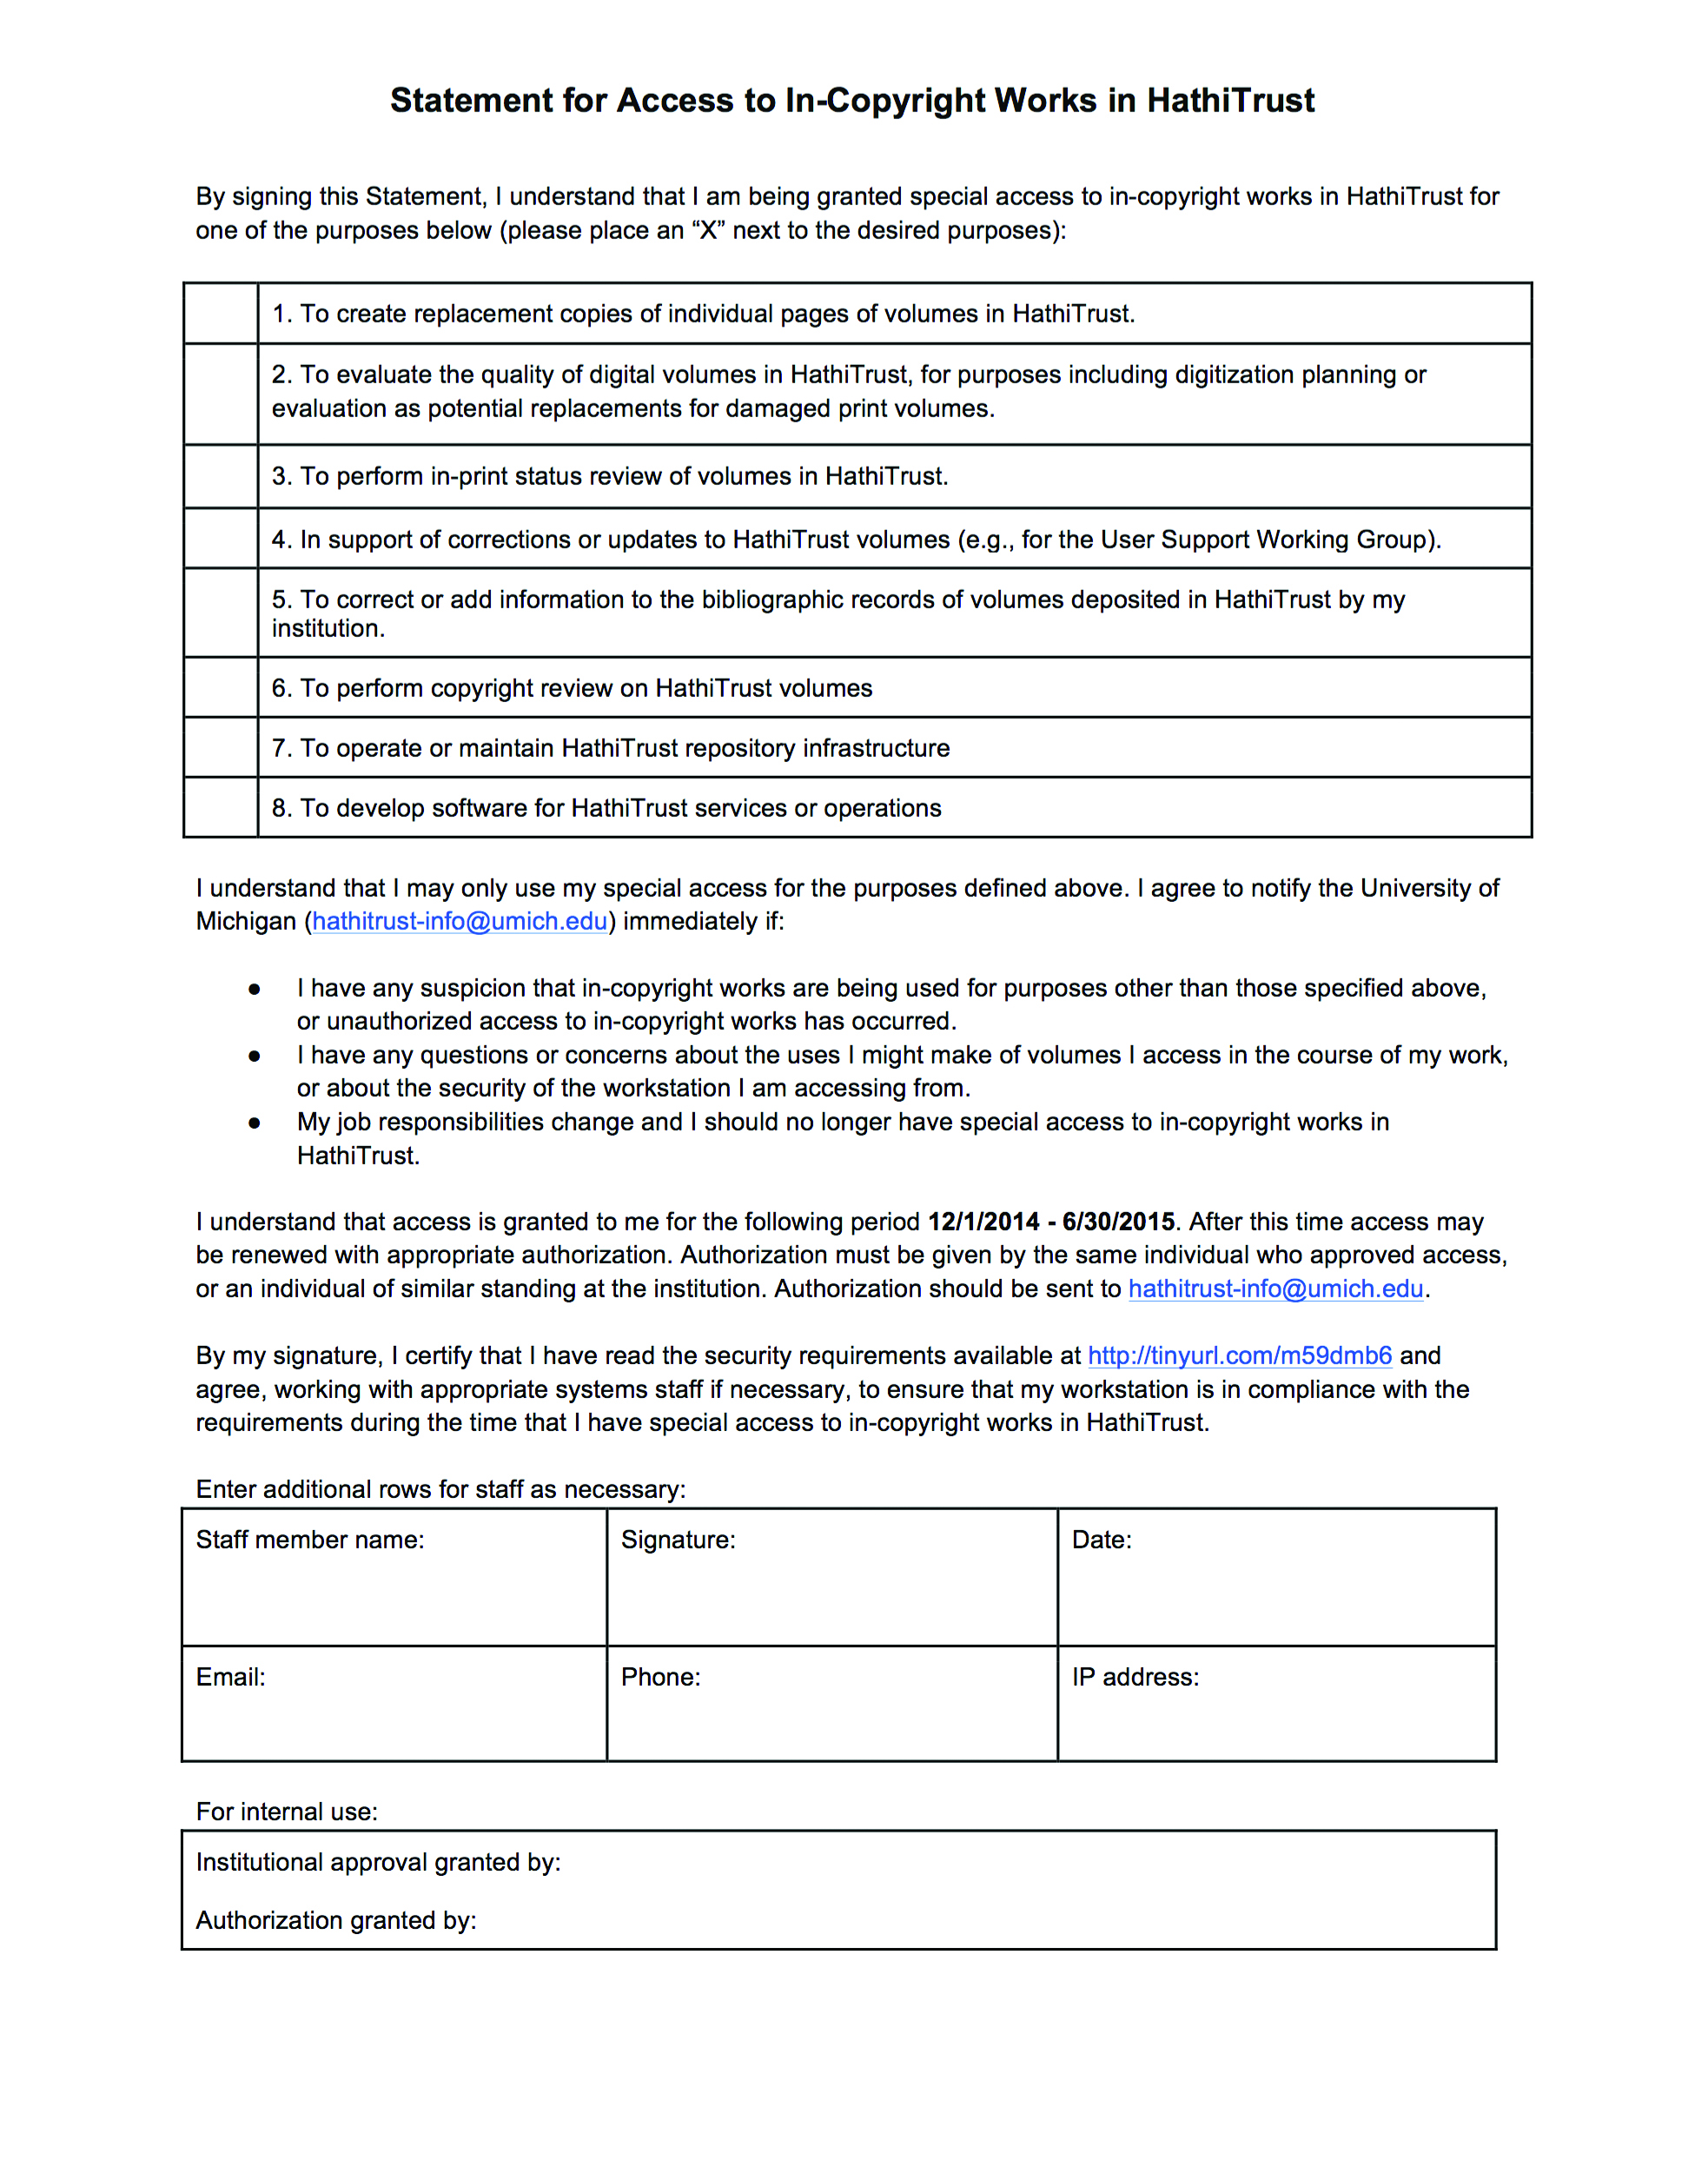 Figure 13 Statement for Access form